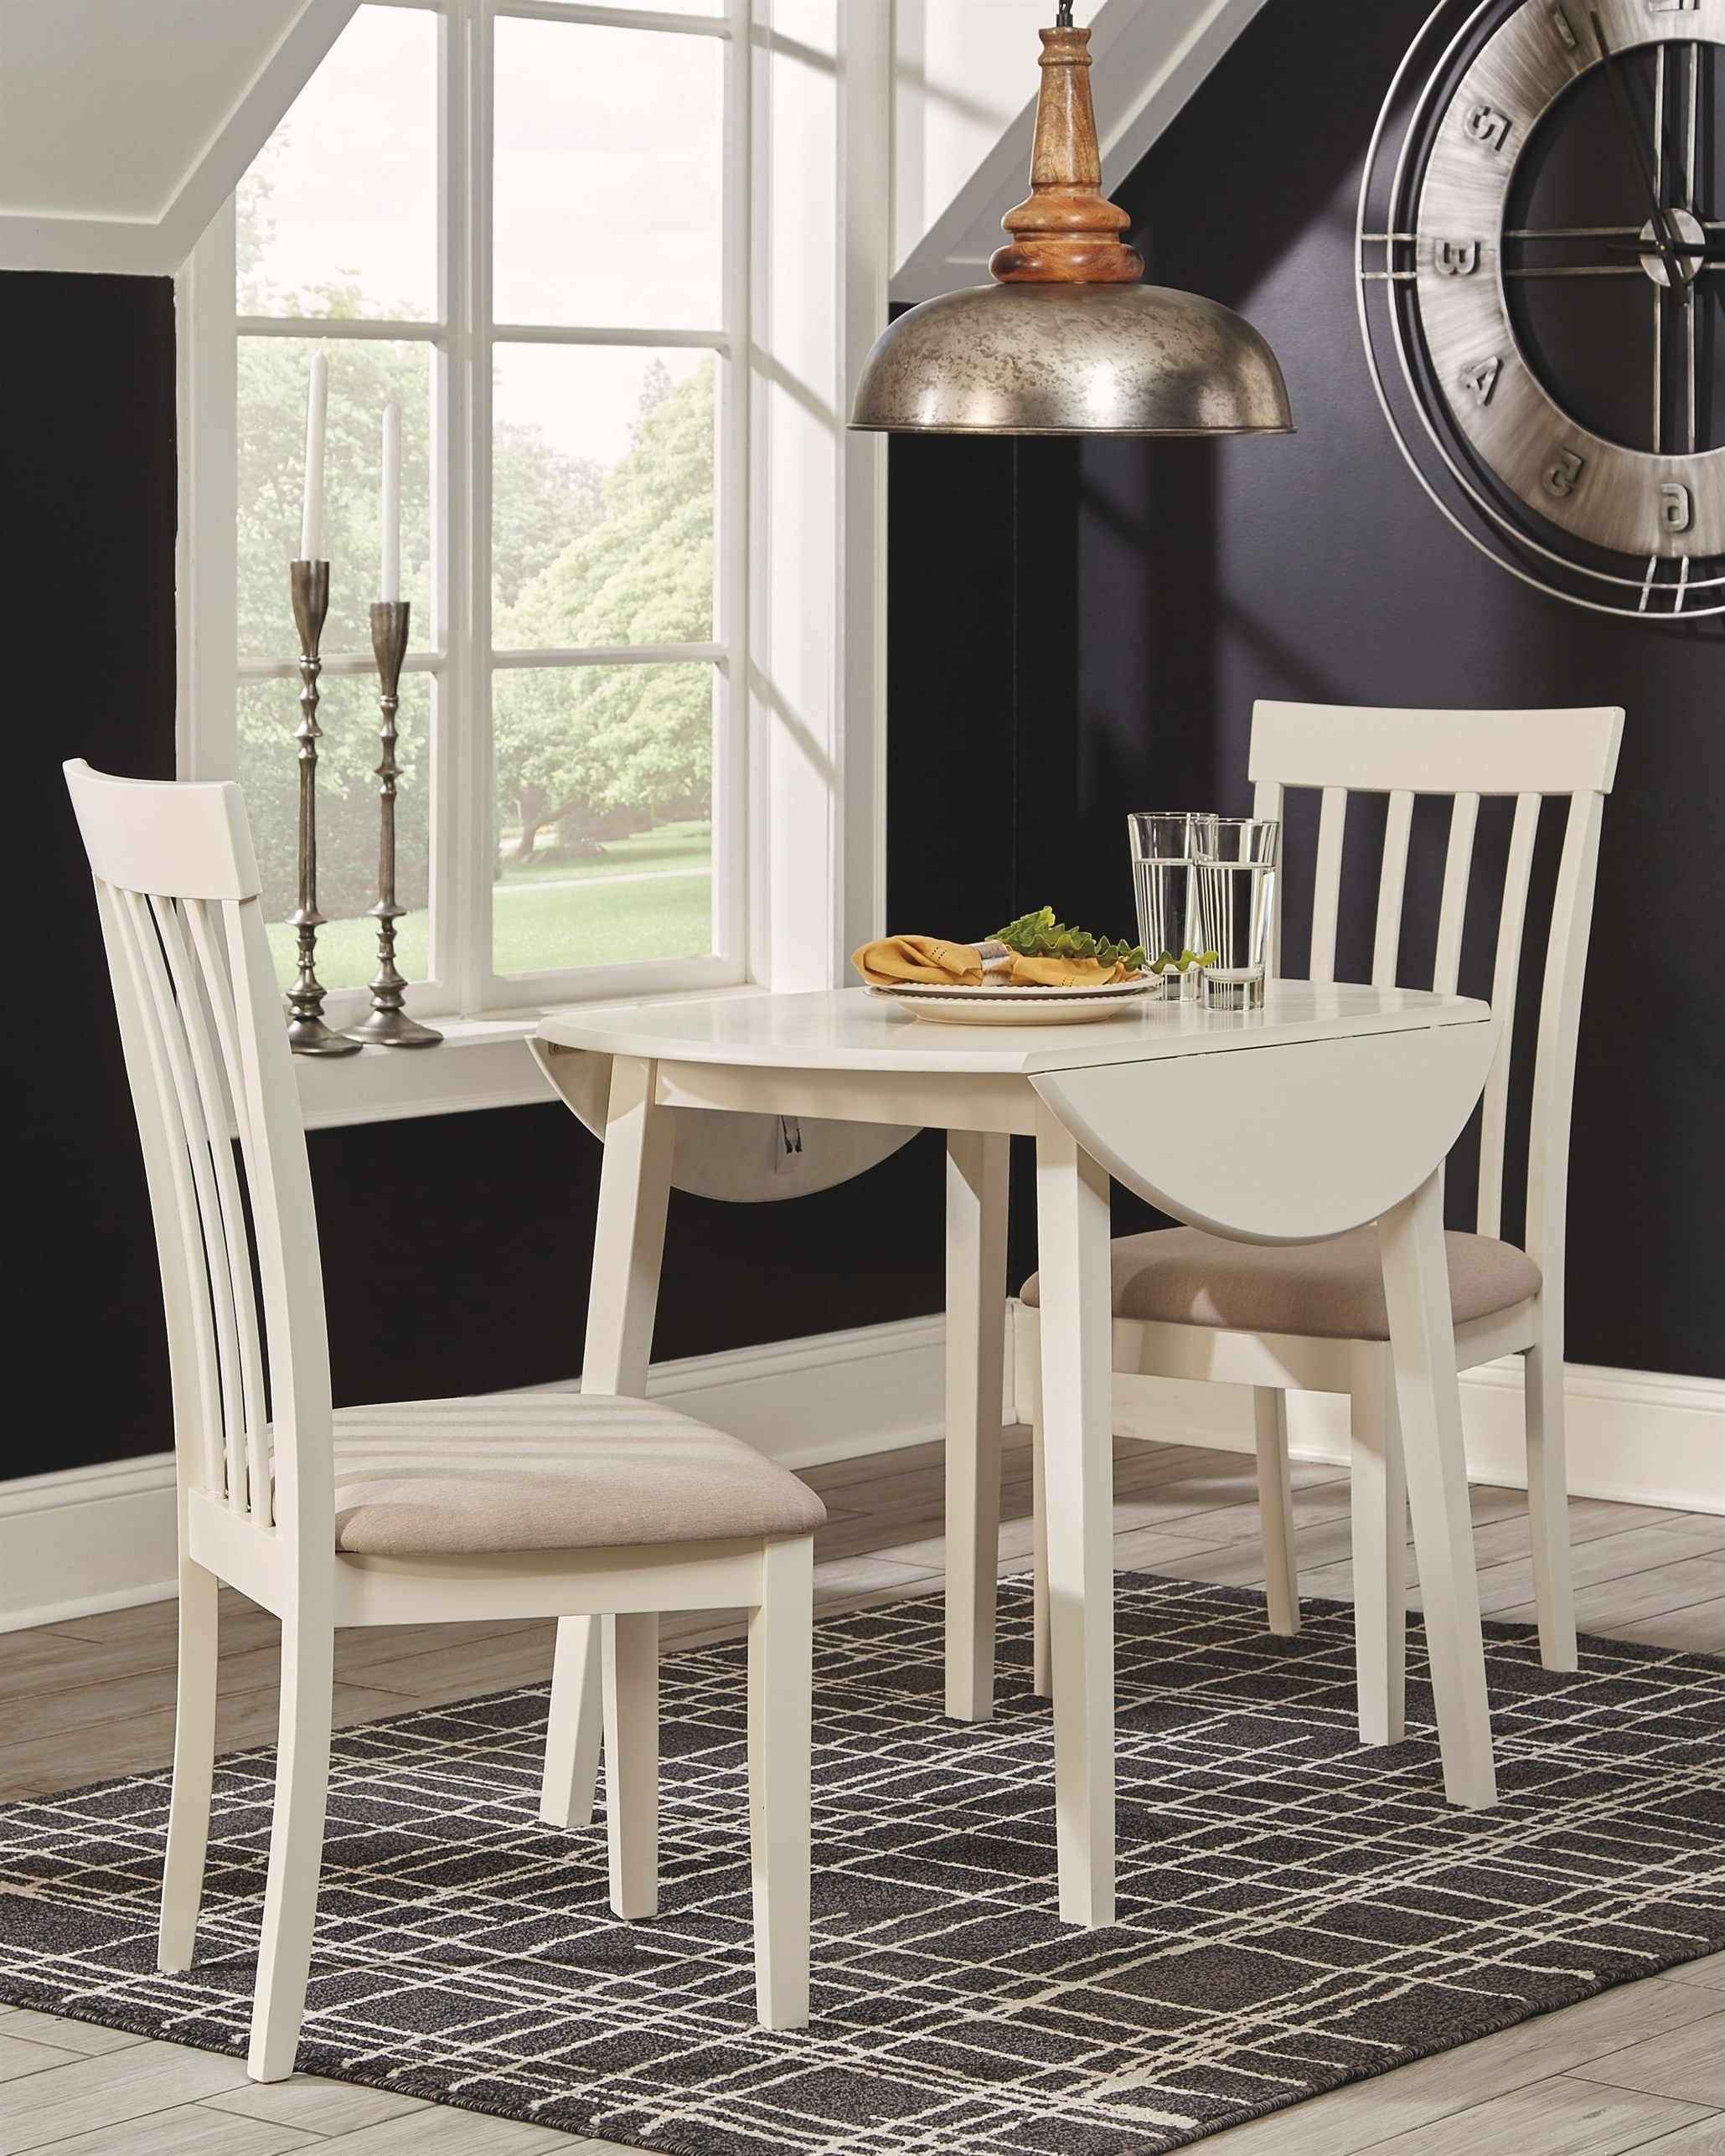 Recent Market 7 Piece Dining Sets With Host And Side Chairs in Slannery Dining Room Chair (Set Of 2), White #diningroomchairs